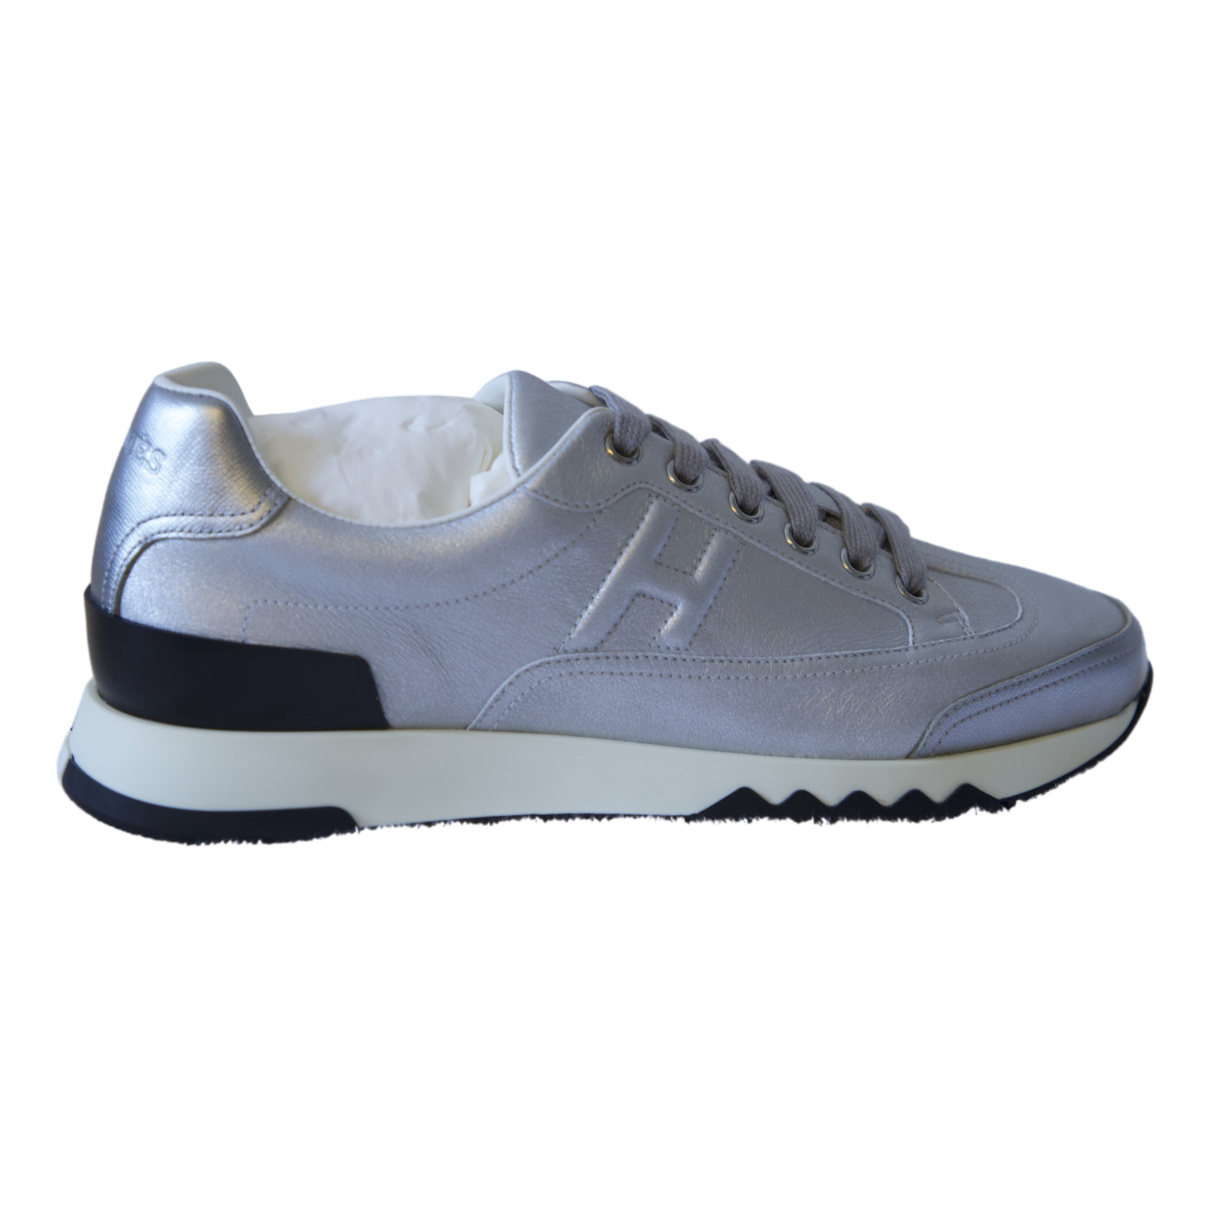 Hermès Trail Silver Leather Trainers for Women 37 EU